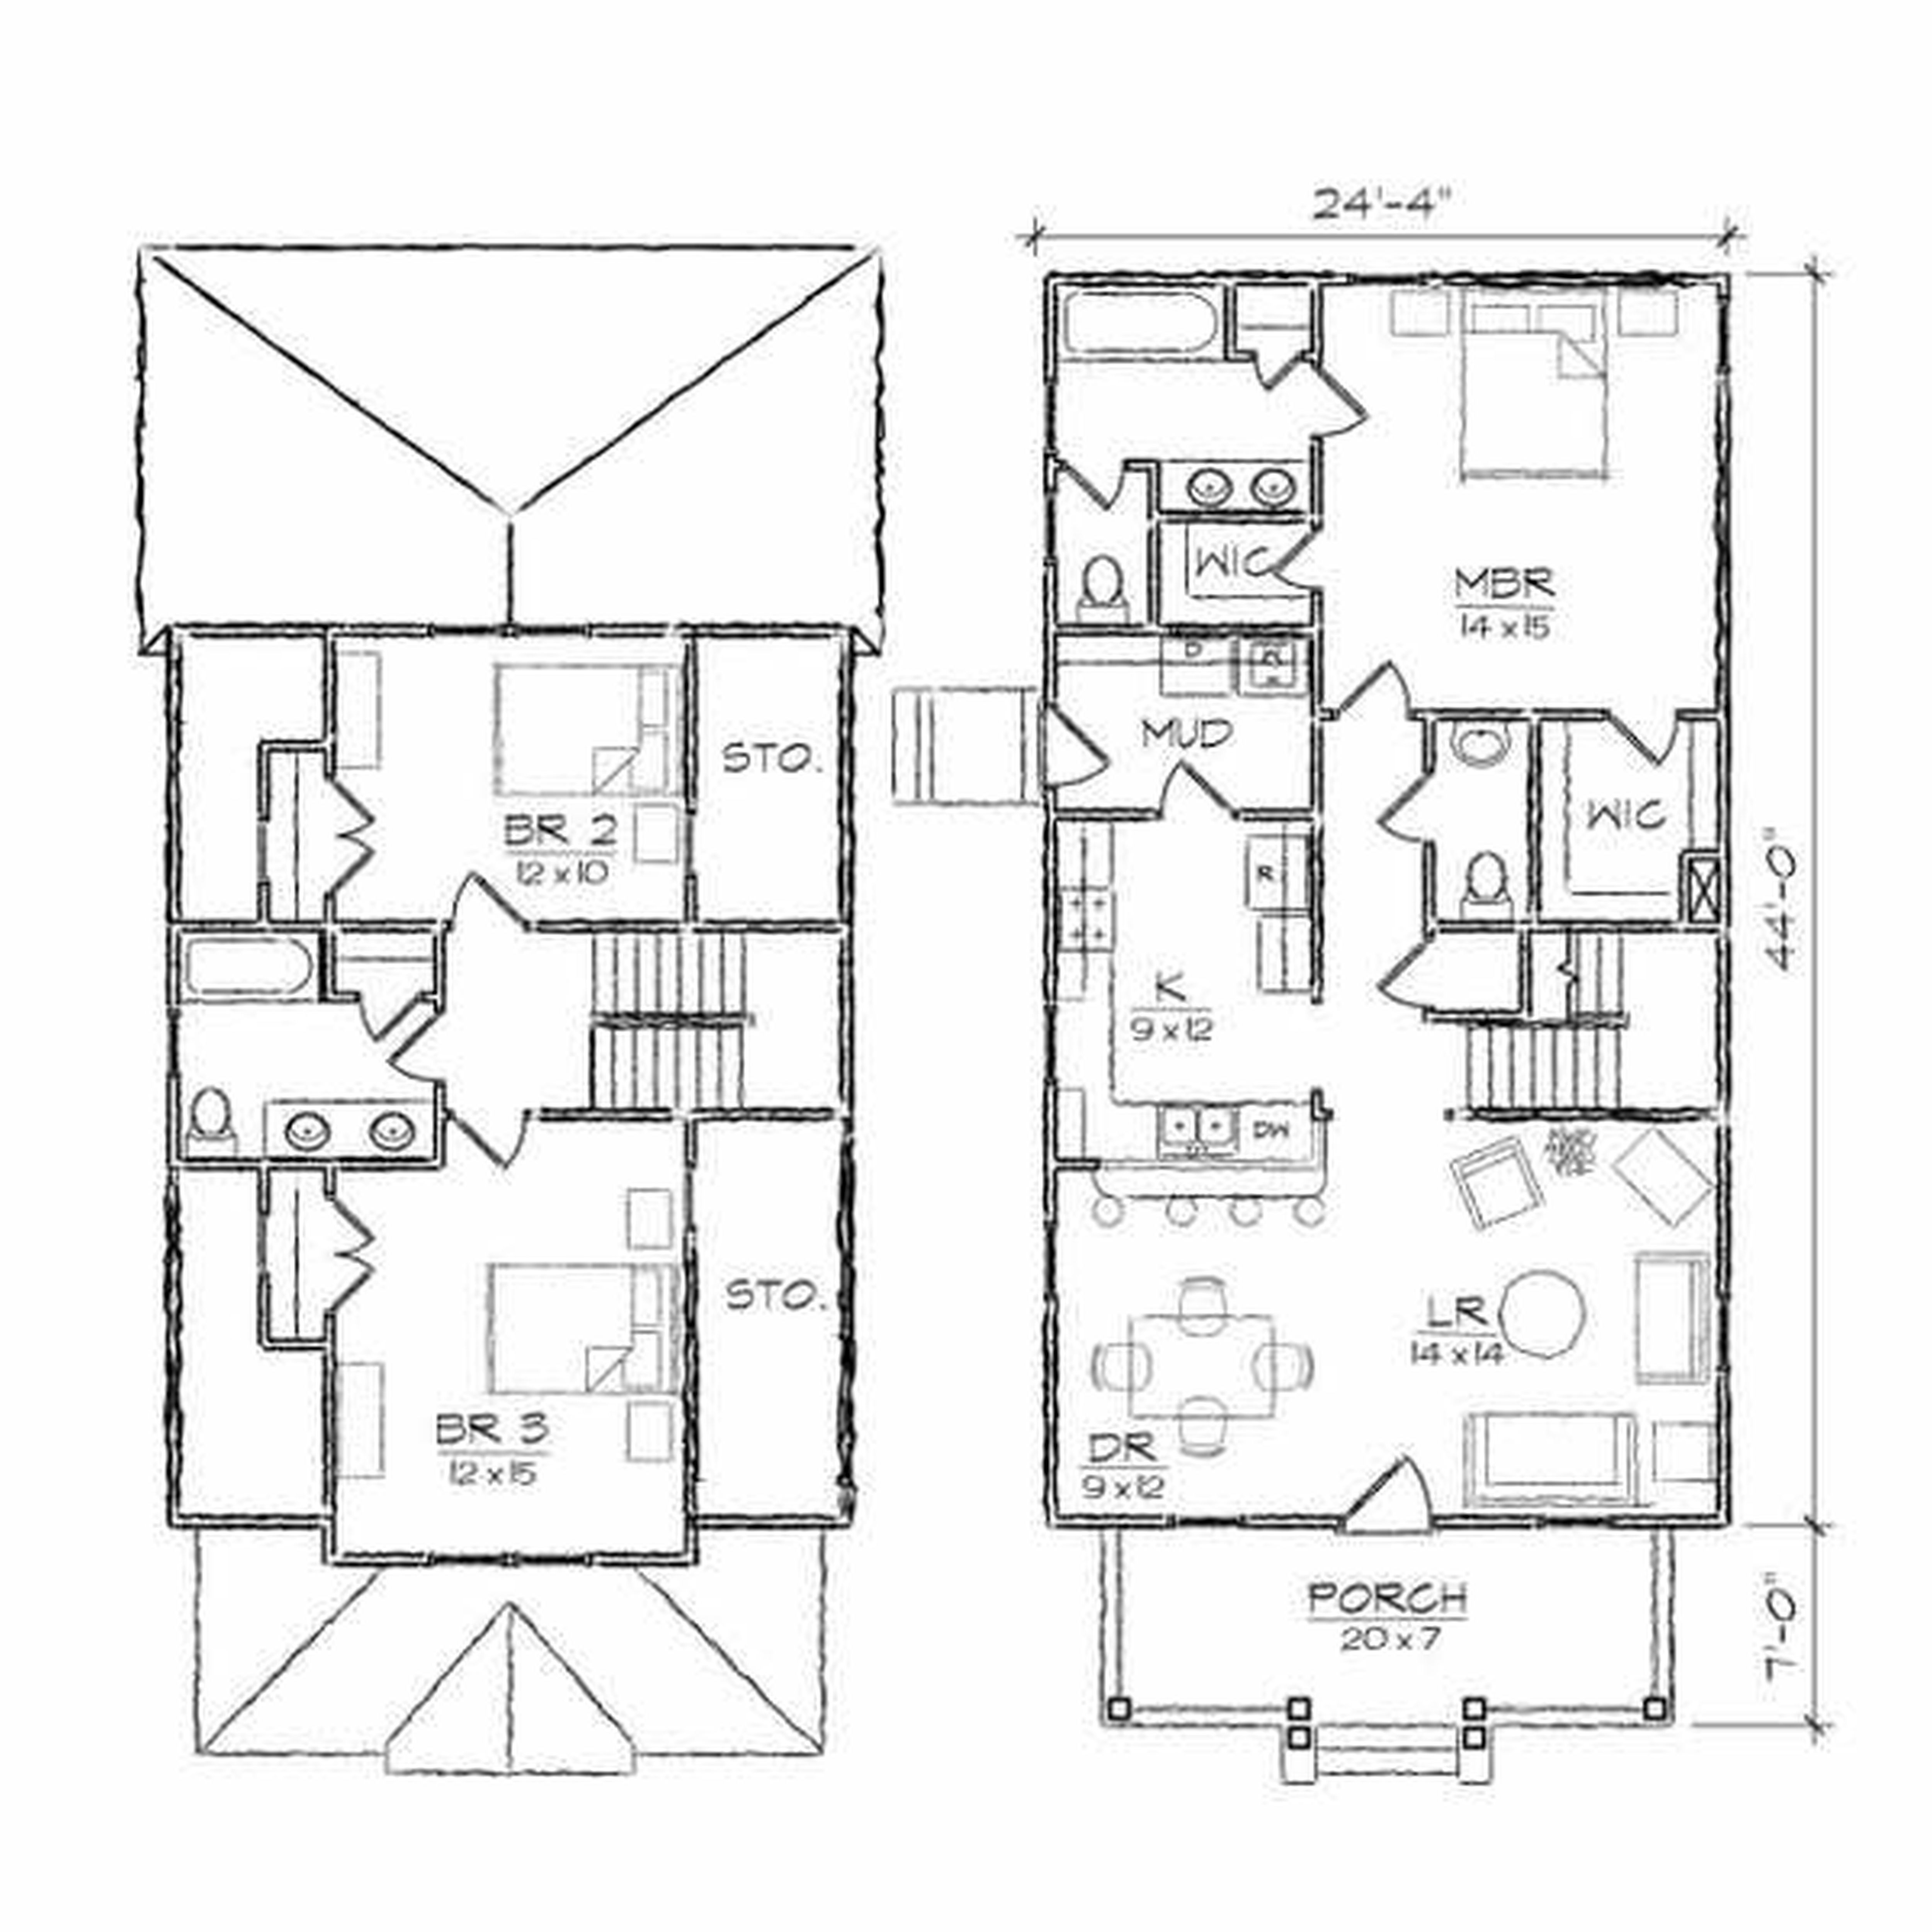 5000x5000 Enchanting House Drawings And Plans Free Images